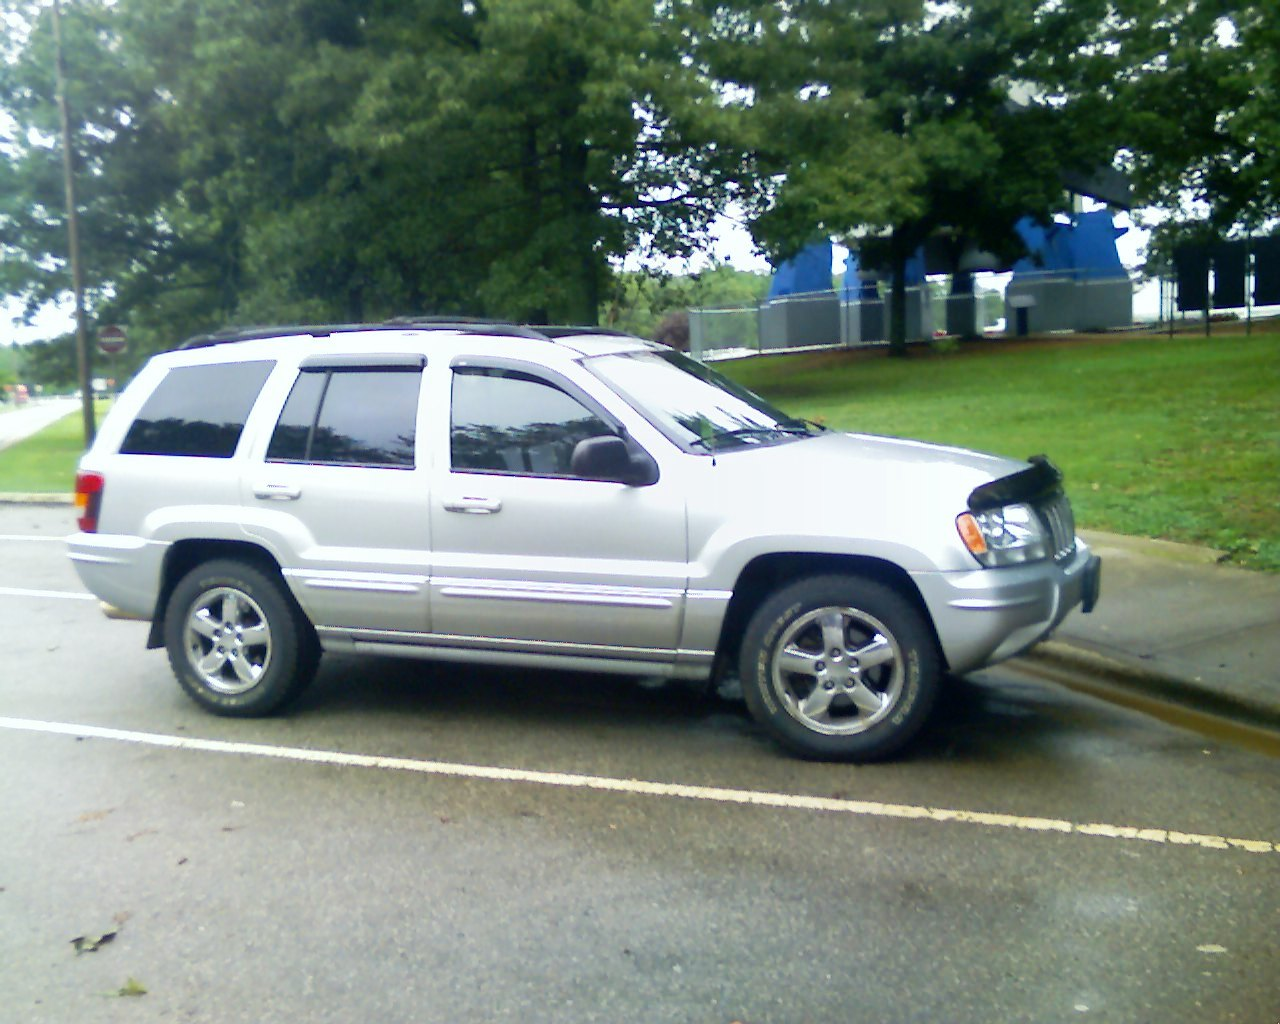 When I first got her in '07